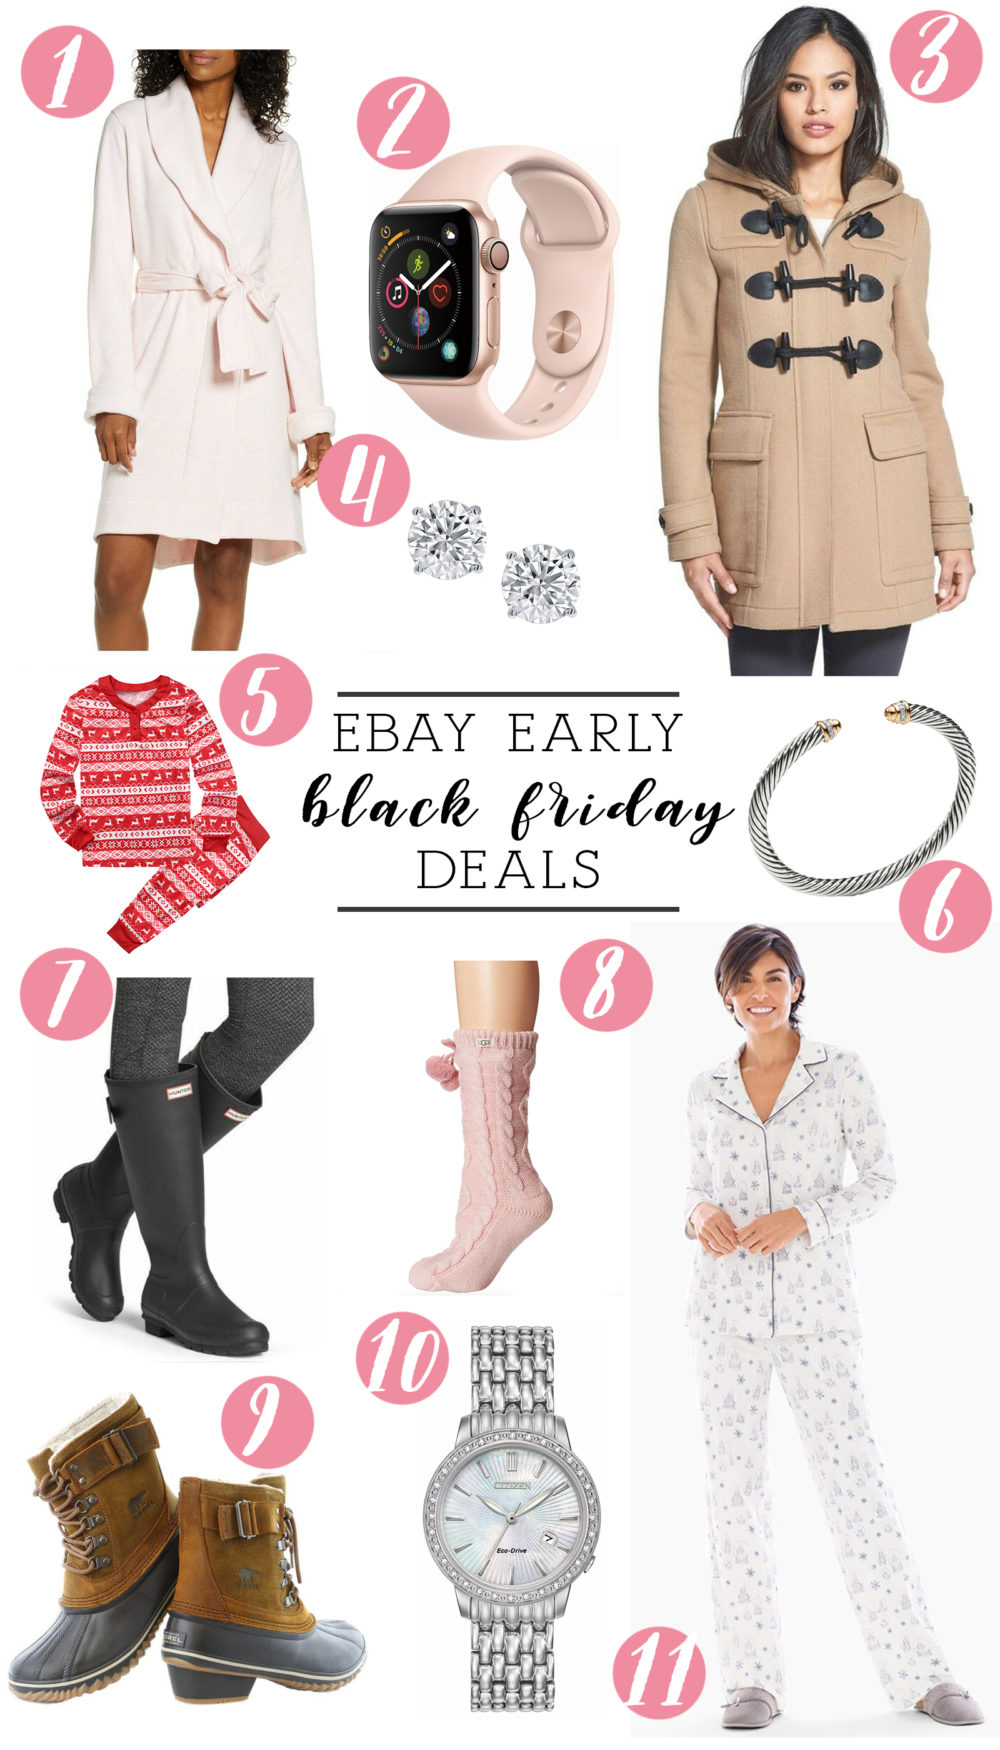 Petite Fashion Blog | eBay Black Friday Deals